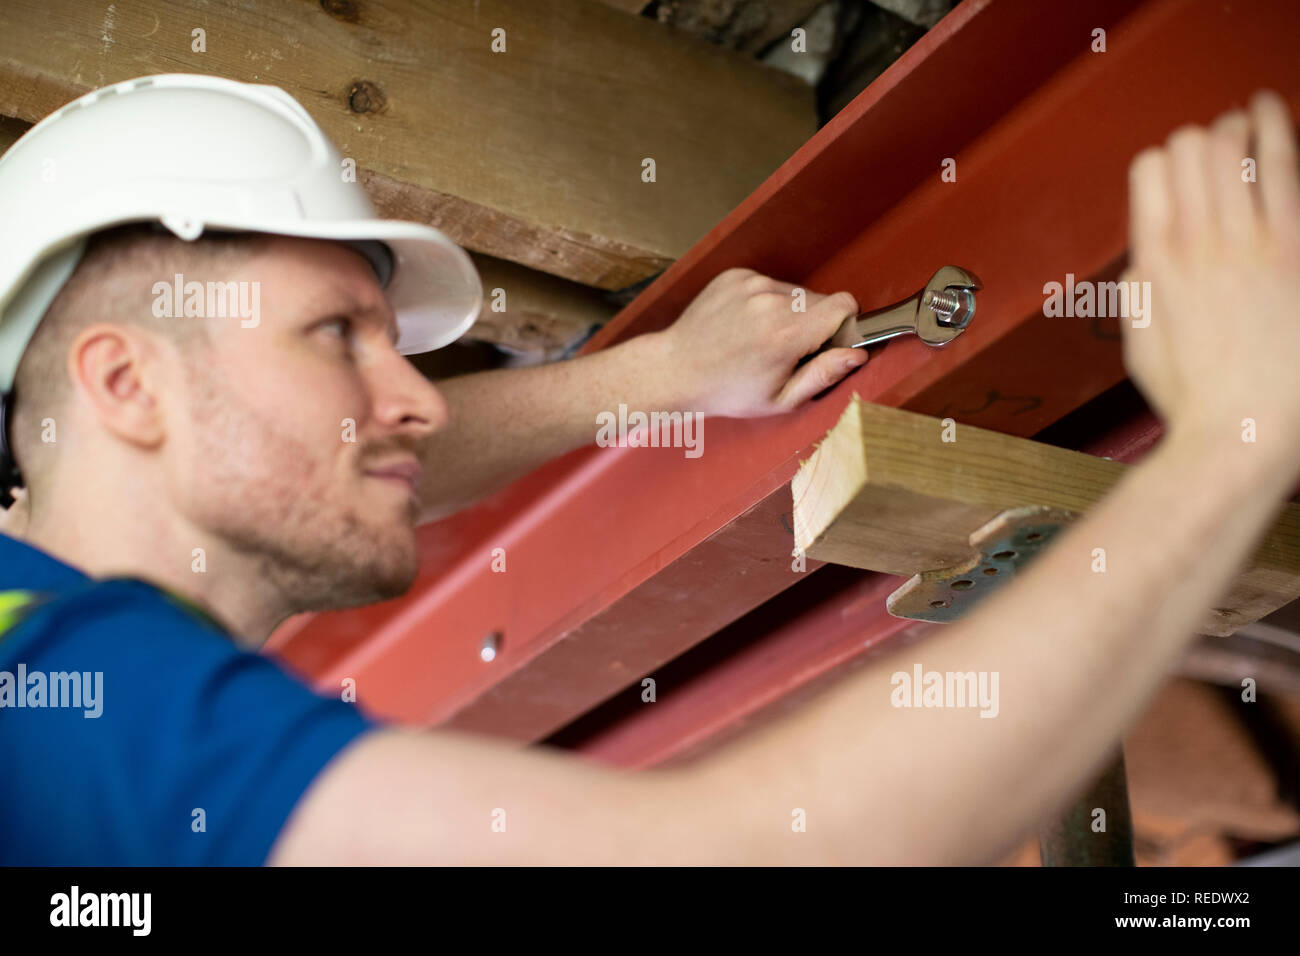 Construction Worker Fitting Steel Support Beam Into Renovated House Ceiling - Stock Image